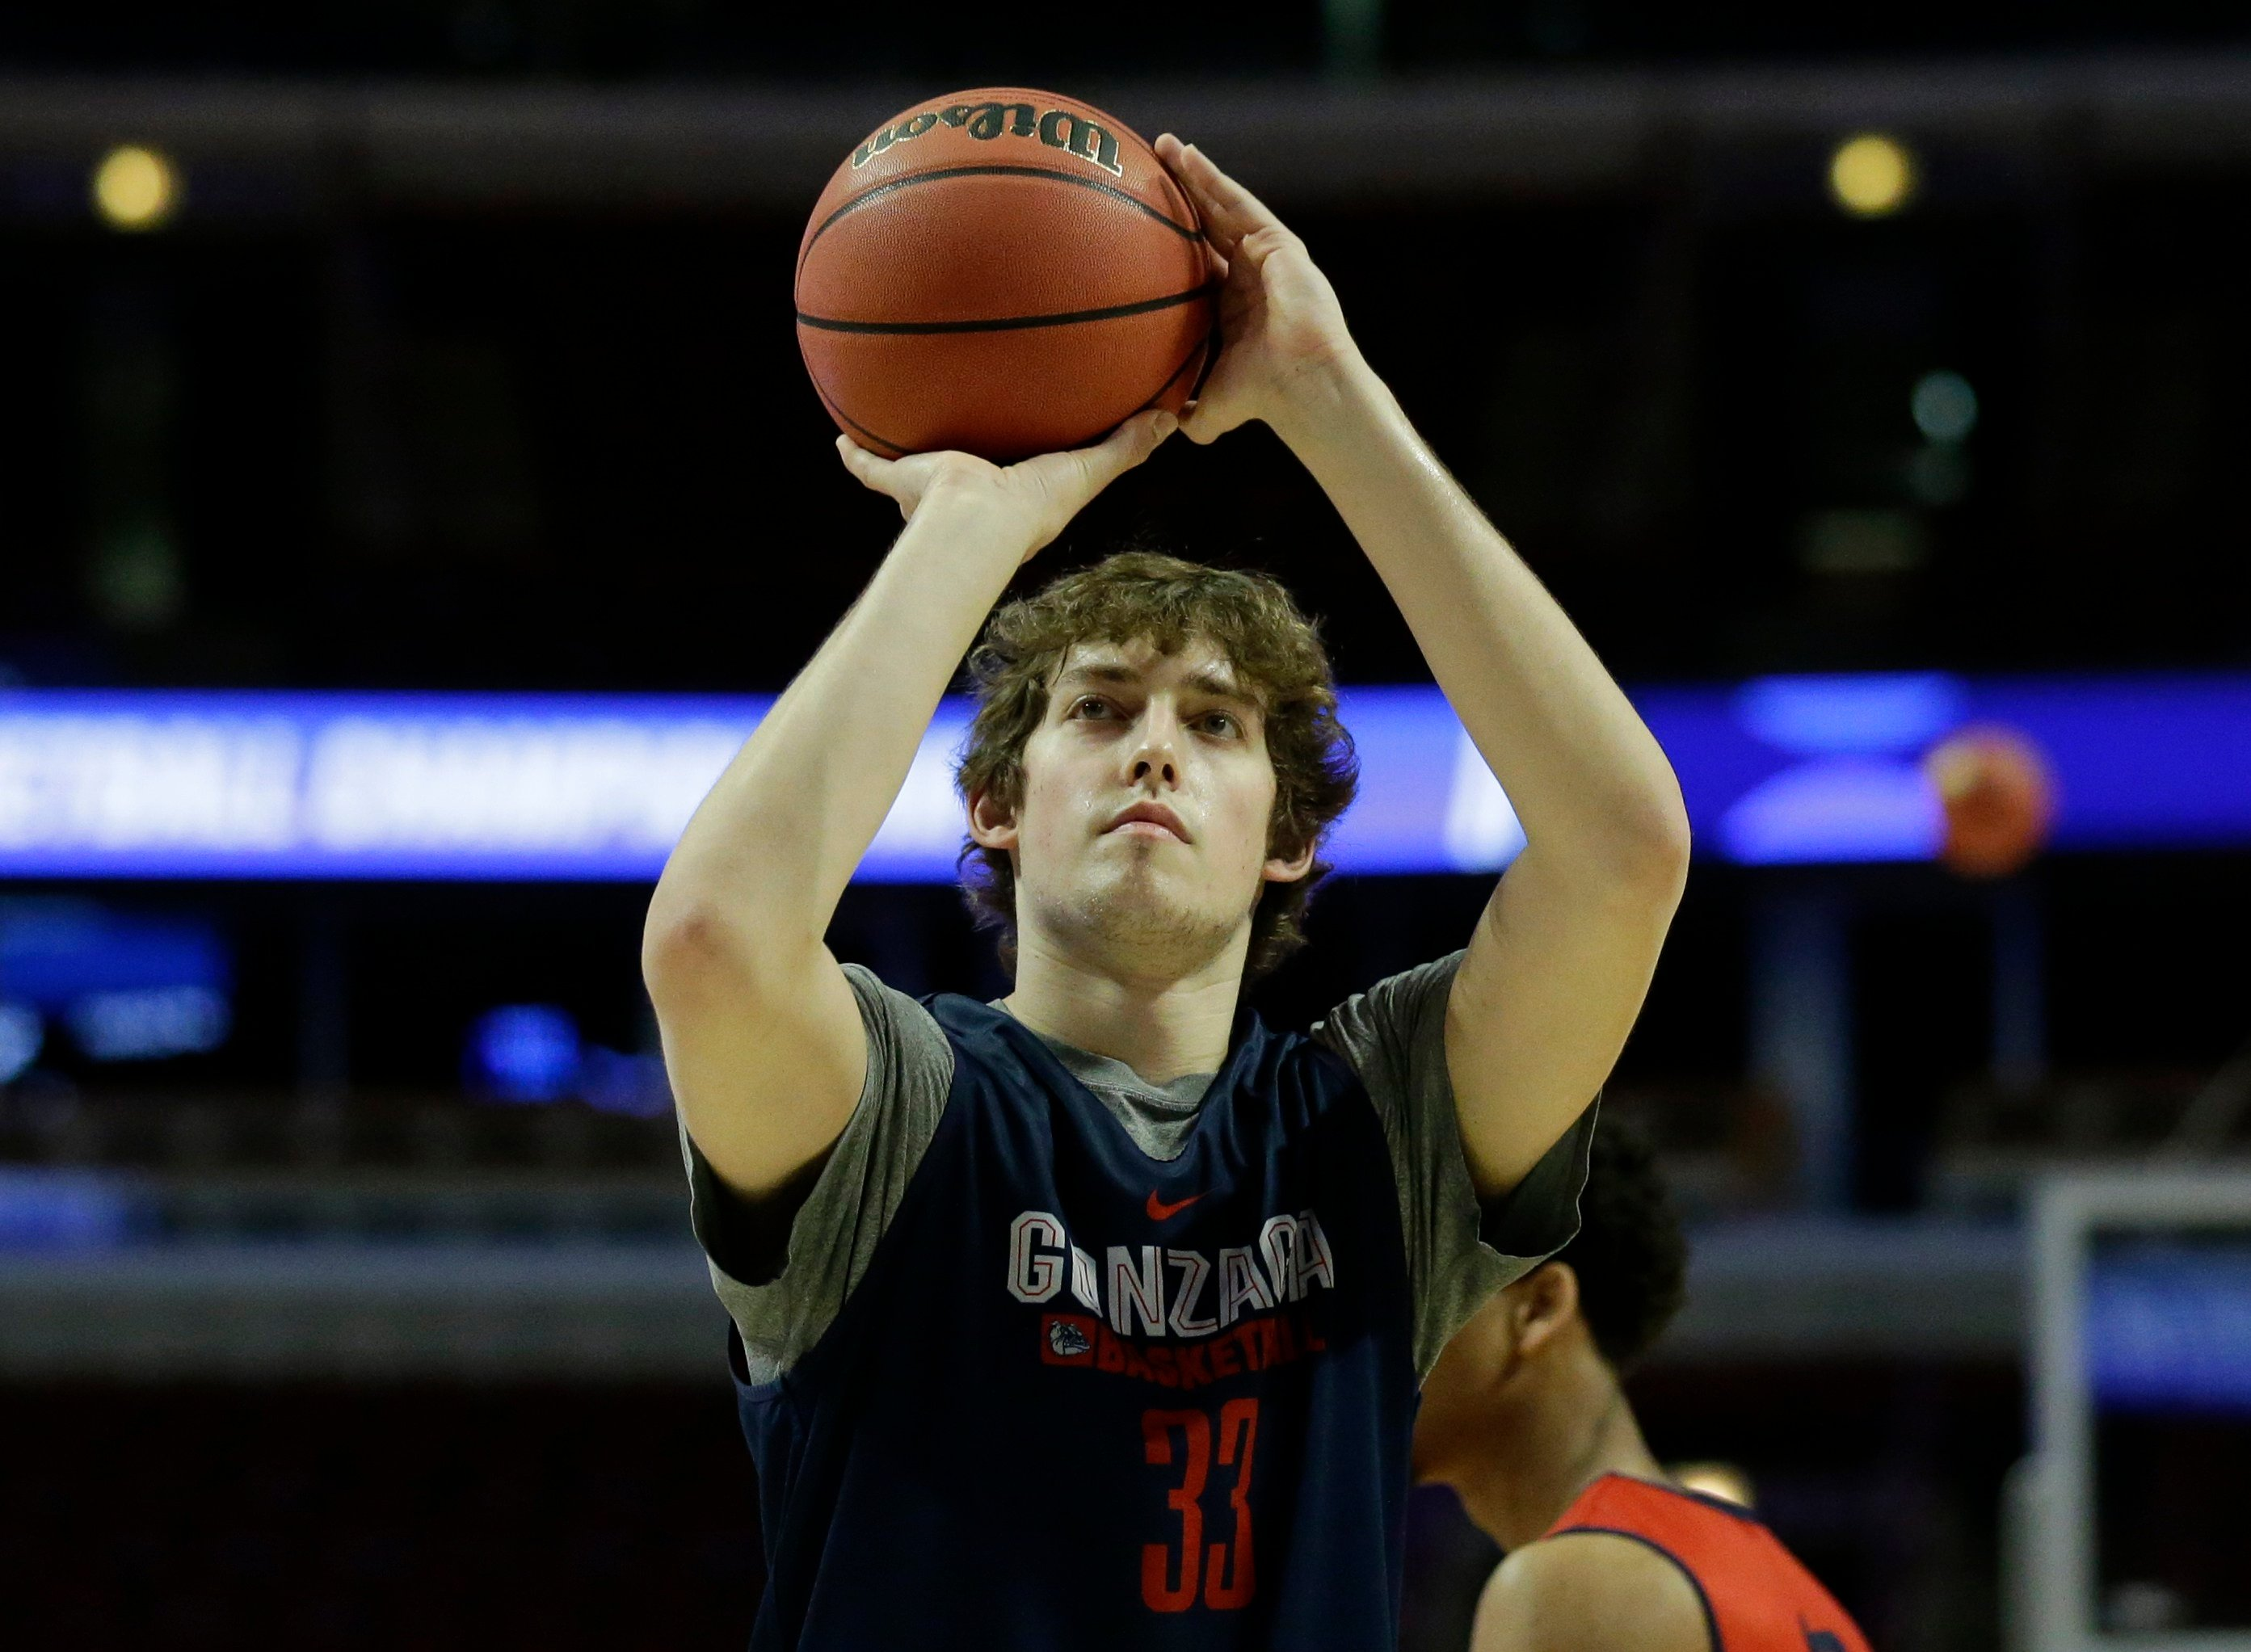 Raptors sign Canadian Wiltjer to 1-year deal